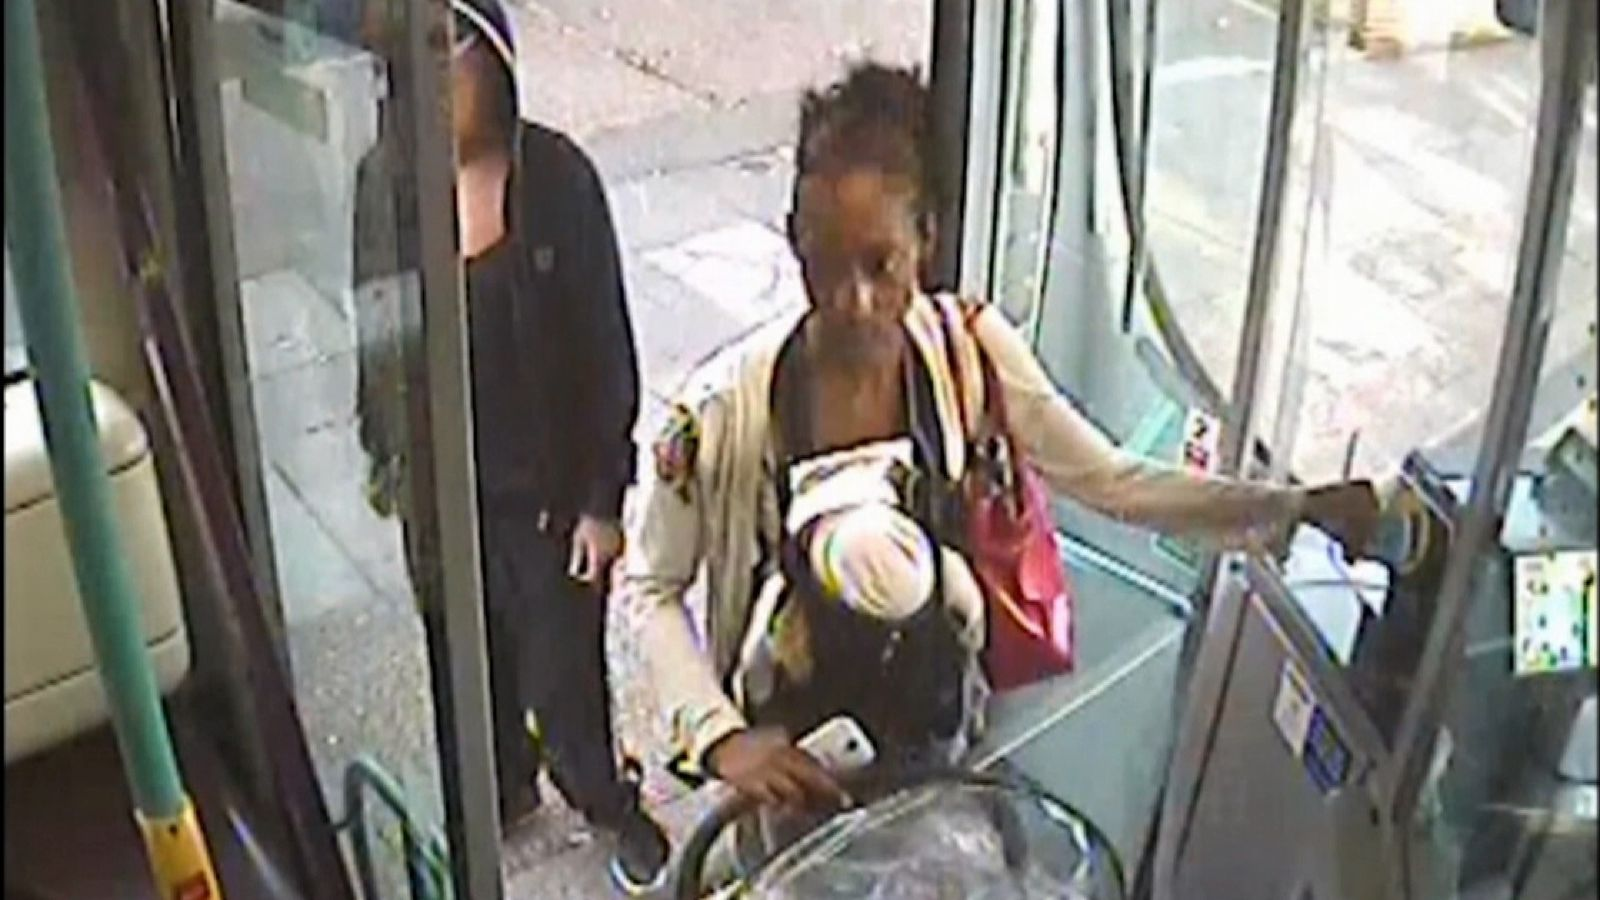 Woman stages baby's death on a bus